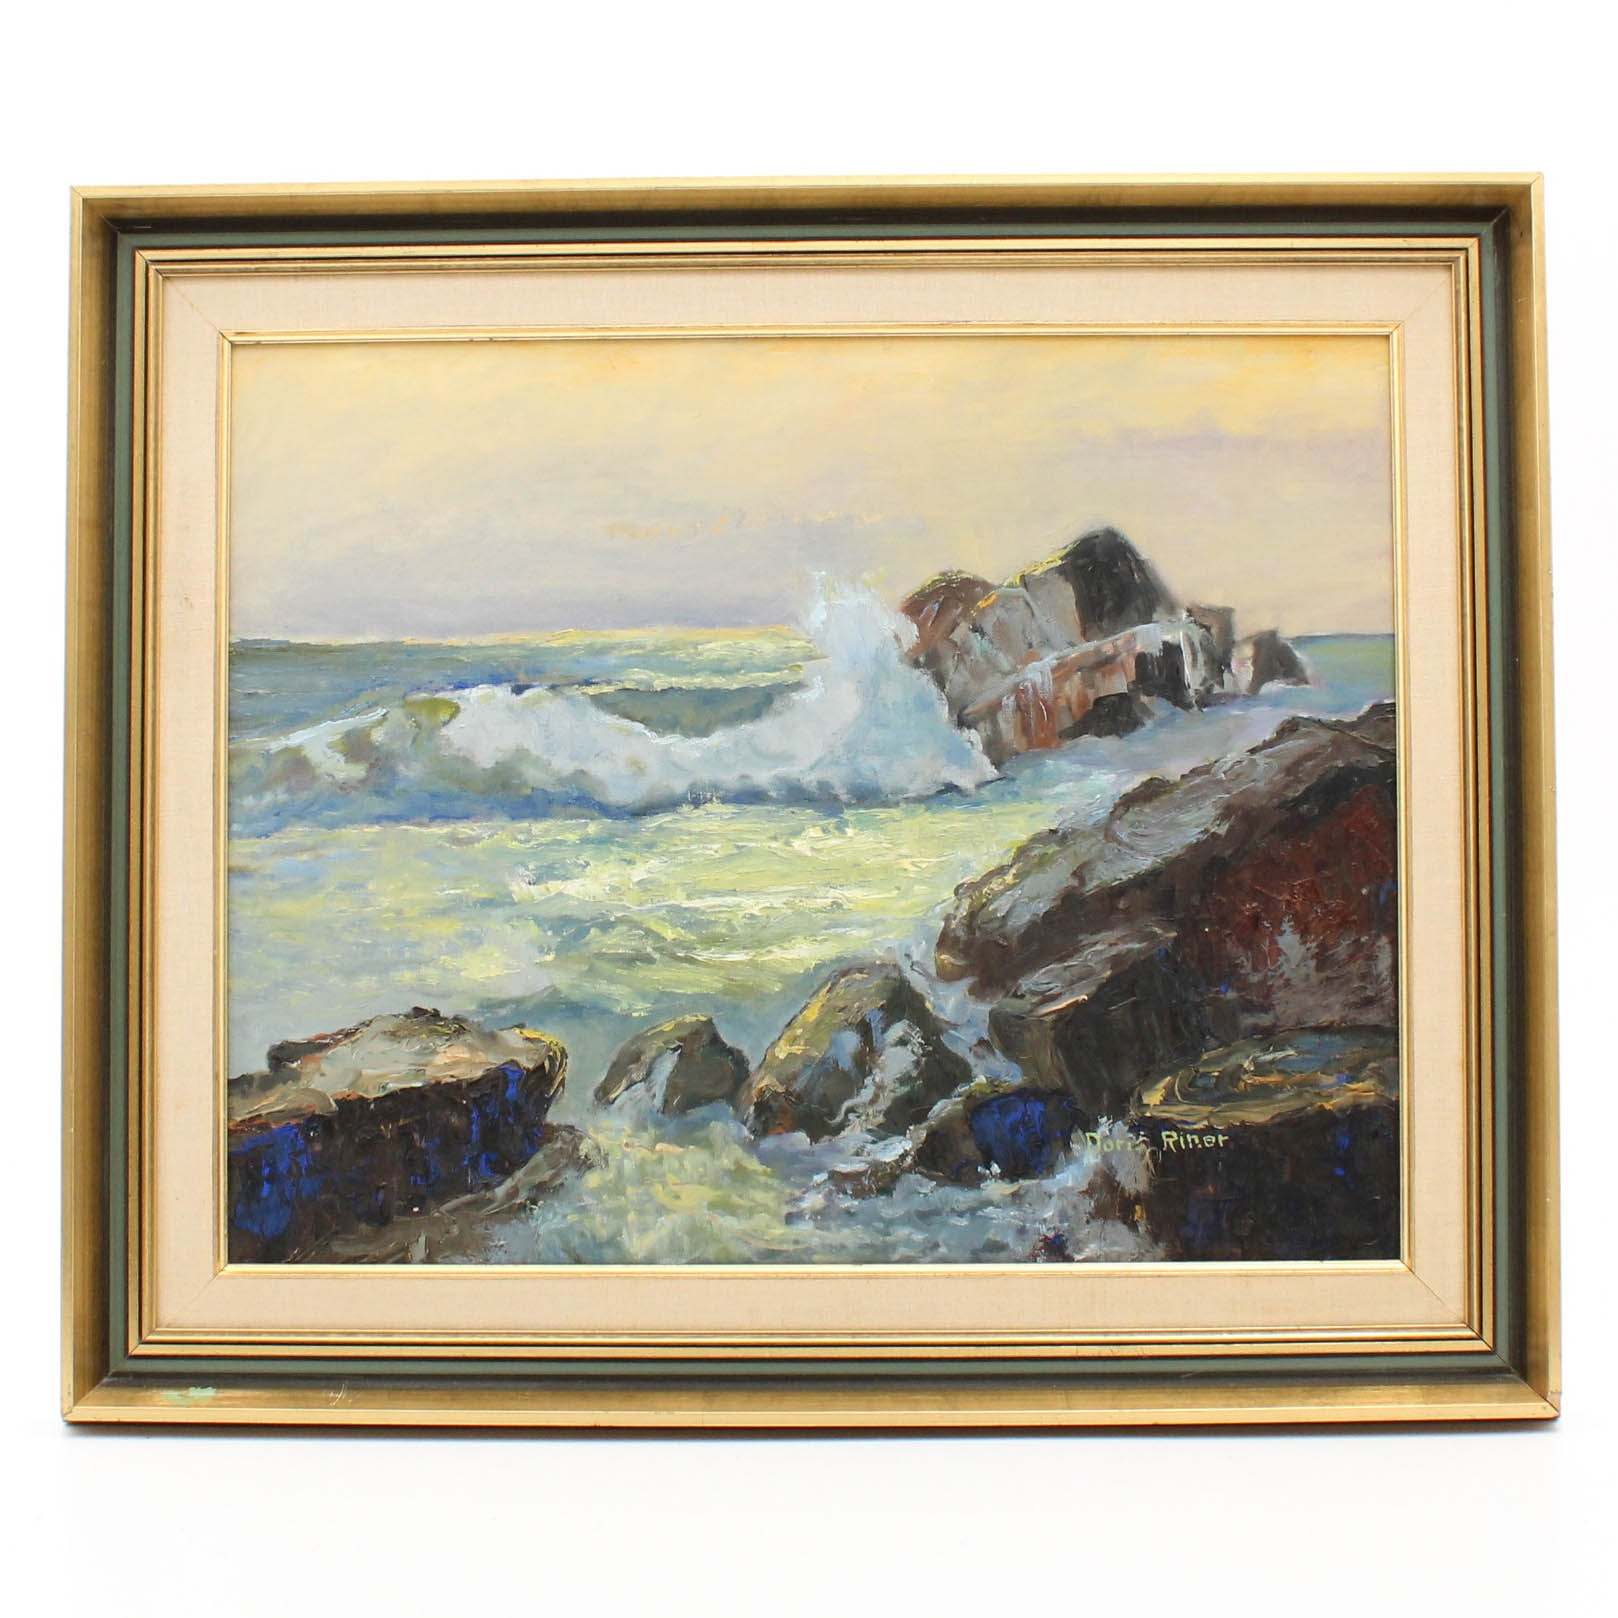 Doris Riner Seascape Oil Painting